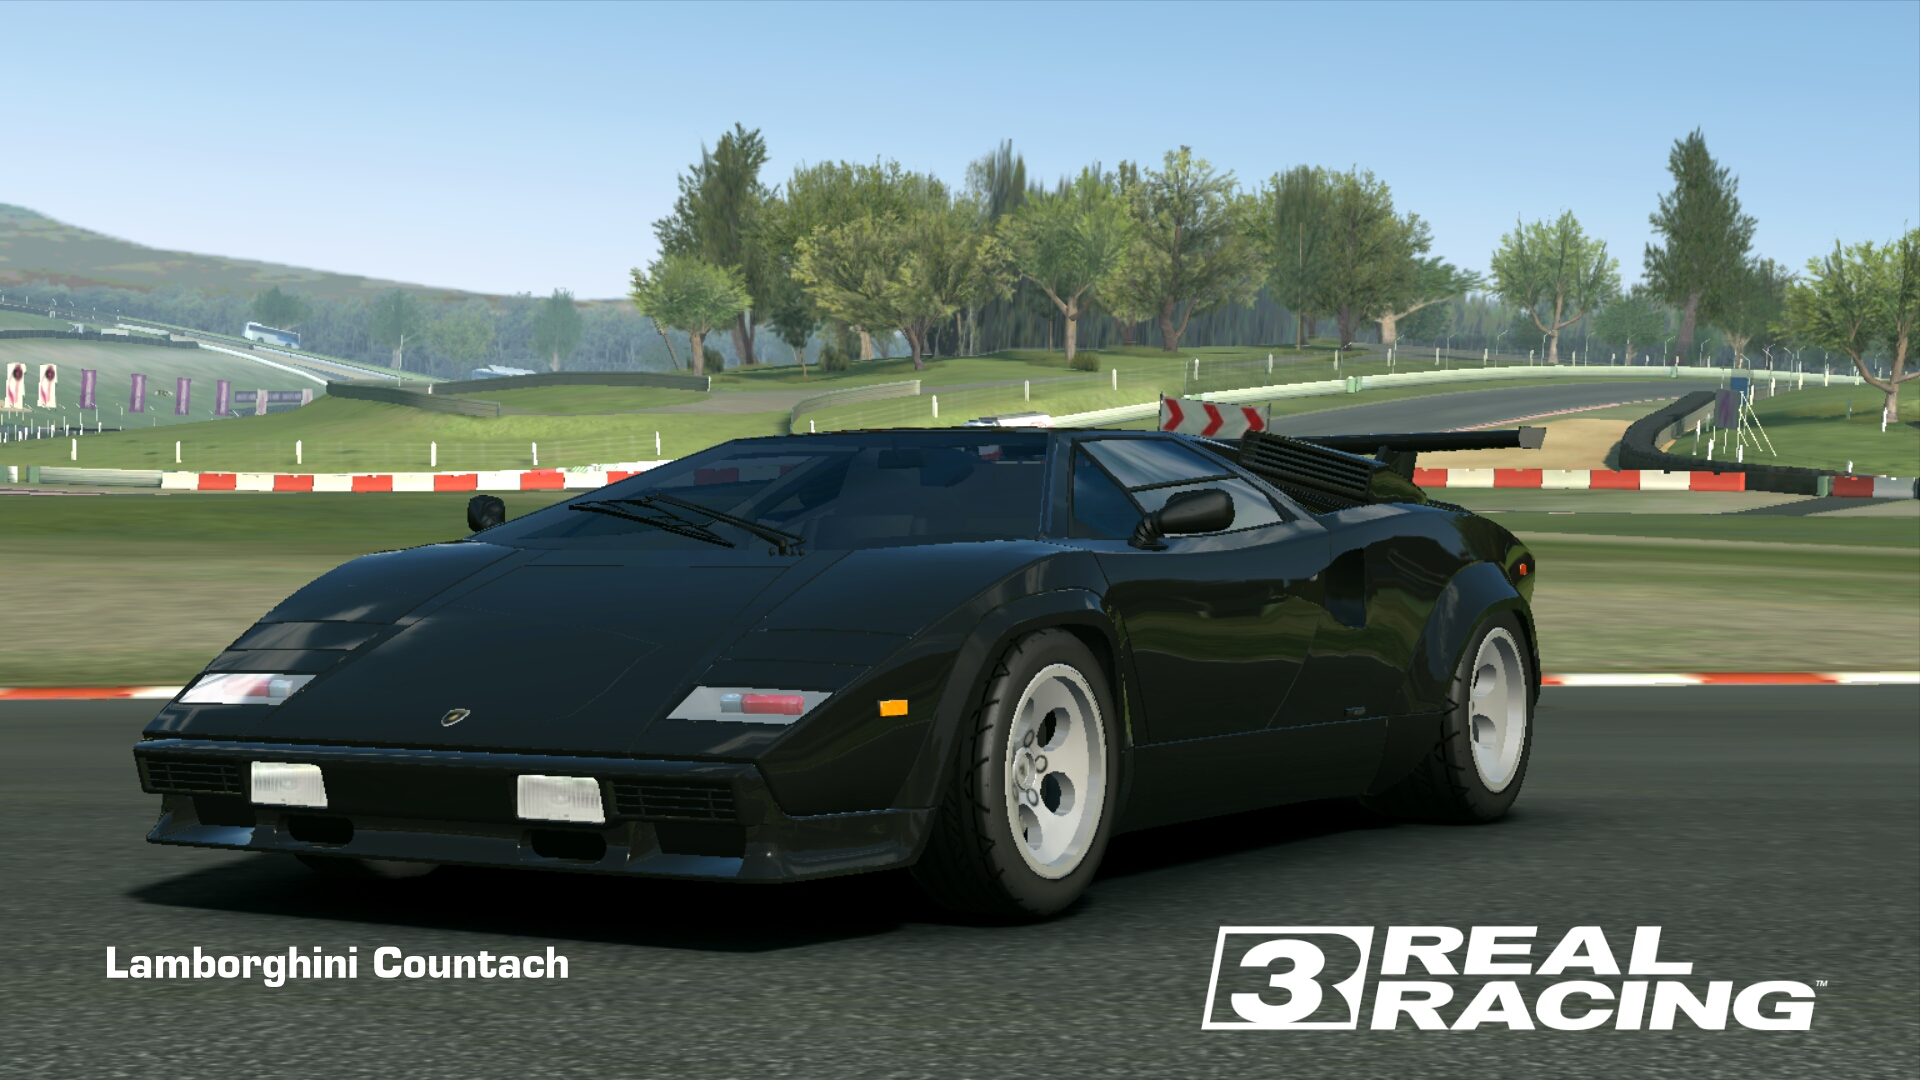 real racing 3 lamborghini countach сколько стоит